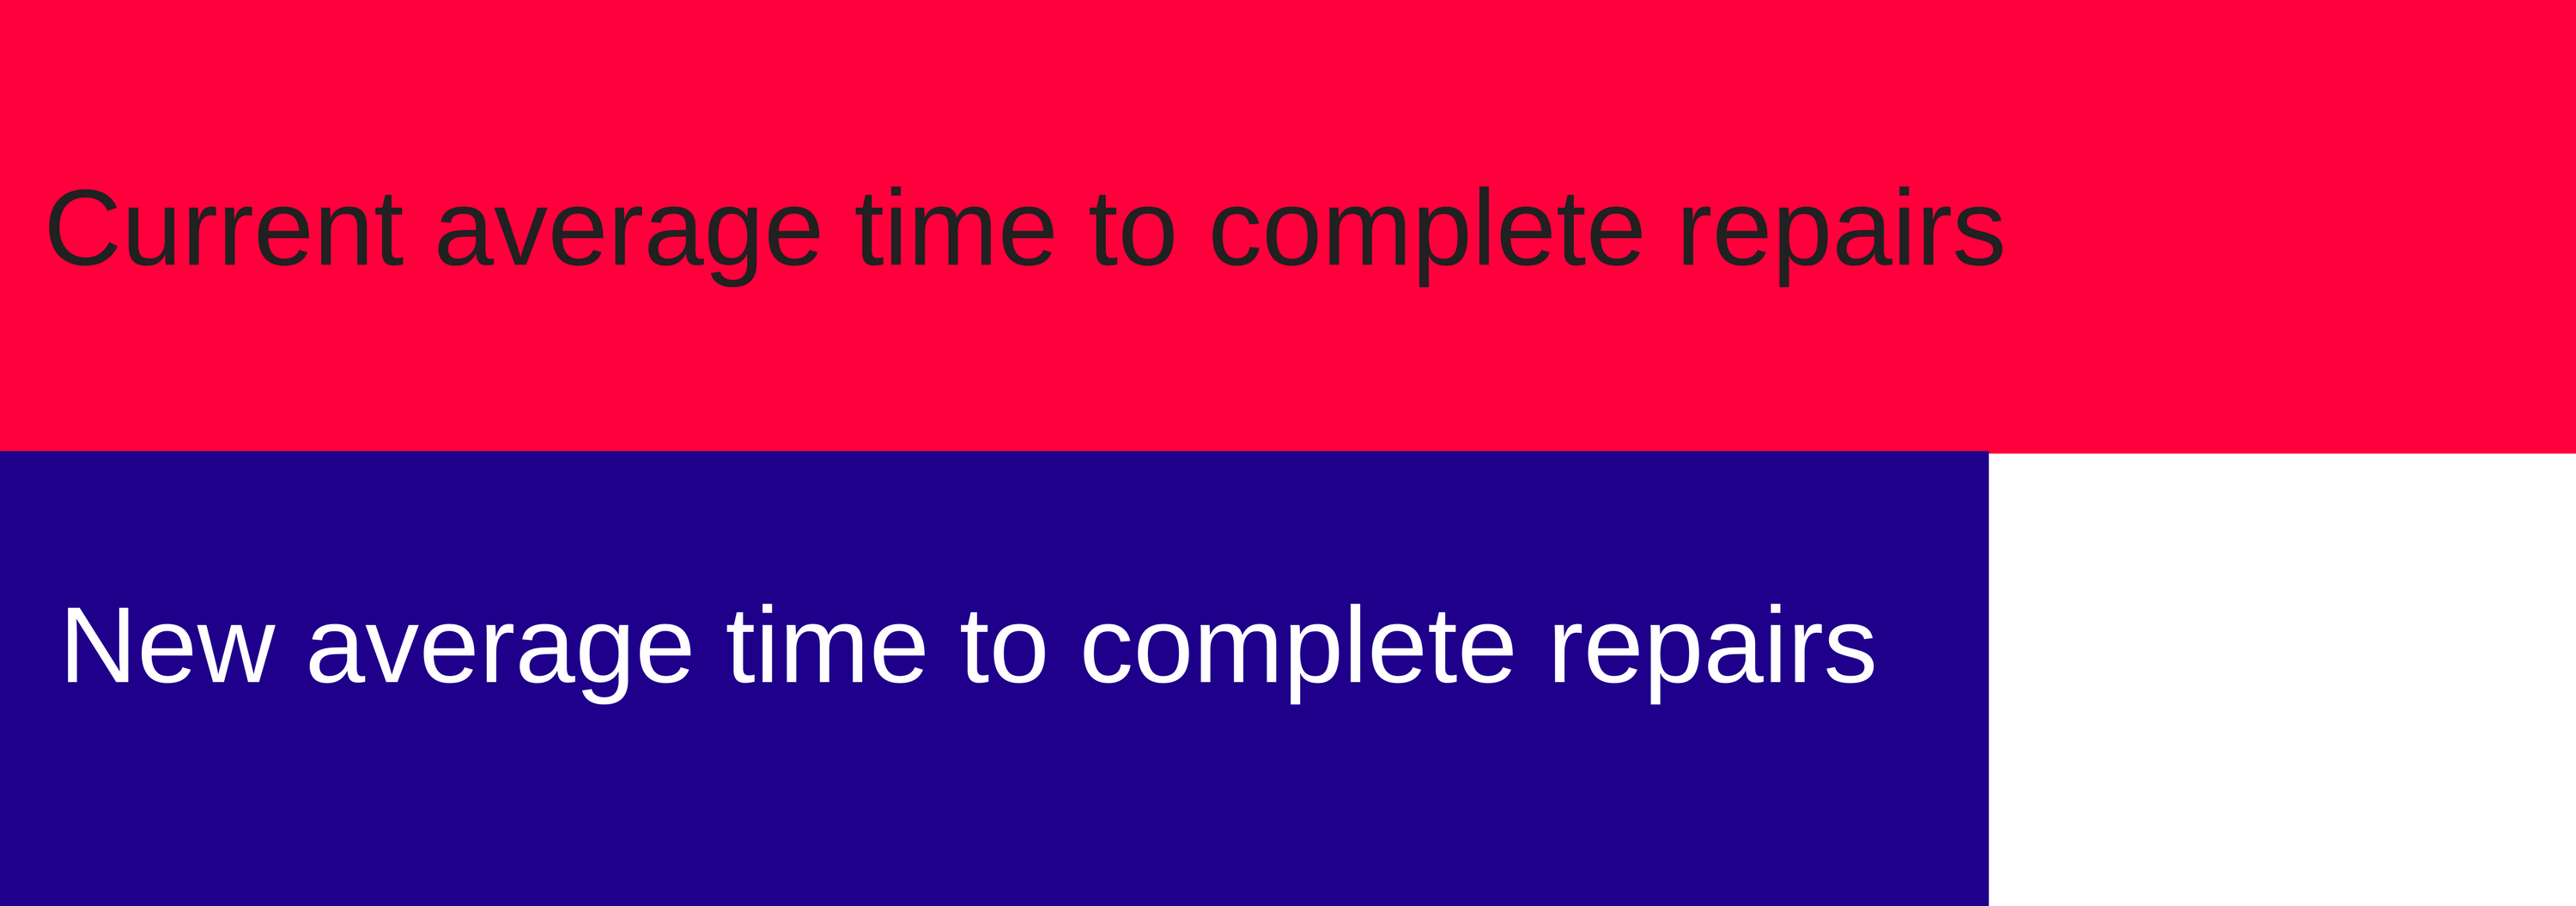 the average time to complete repairs will be reduced if the repairs categories are updated